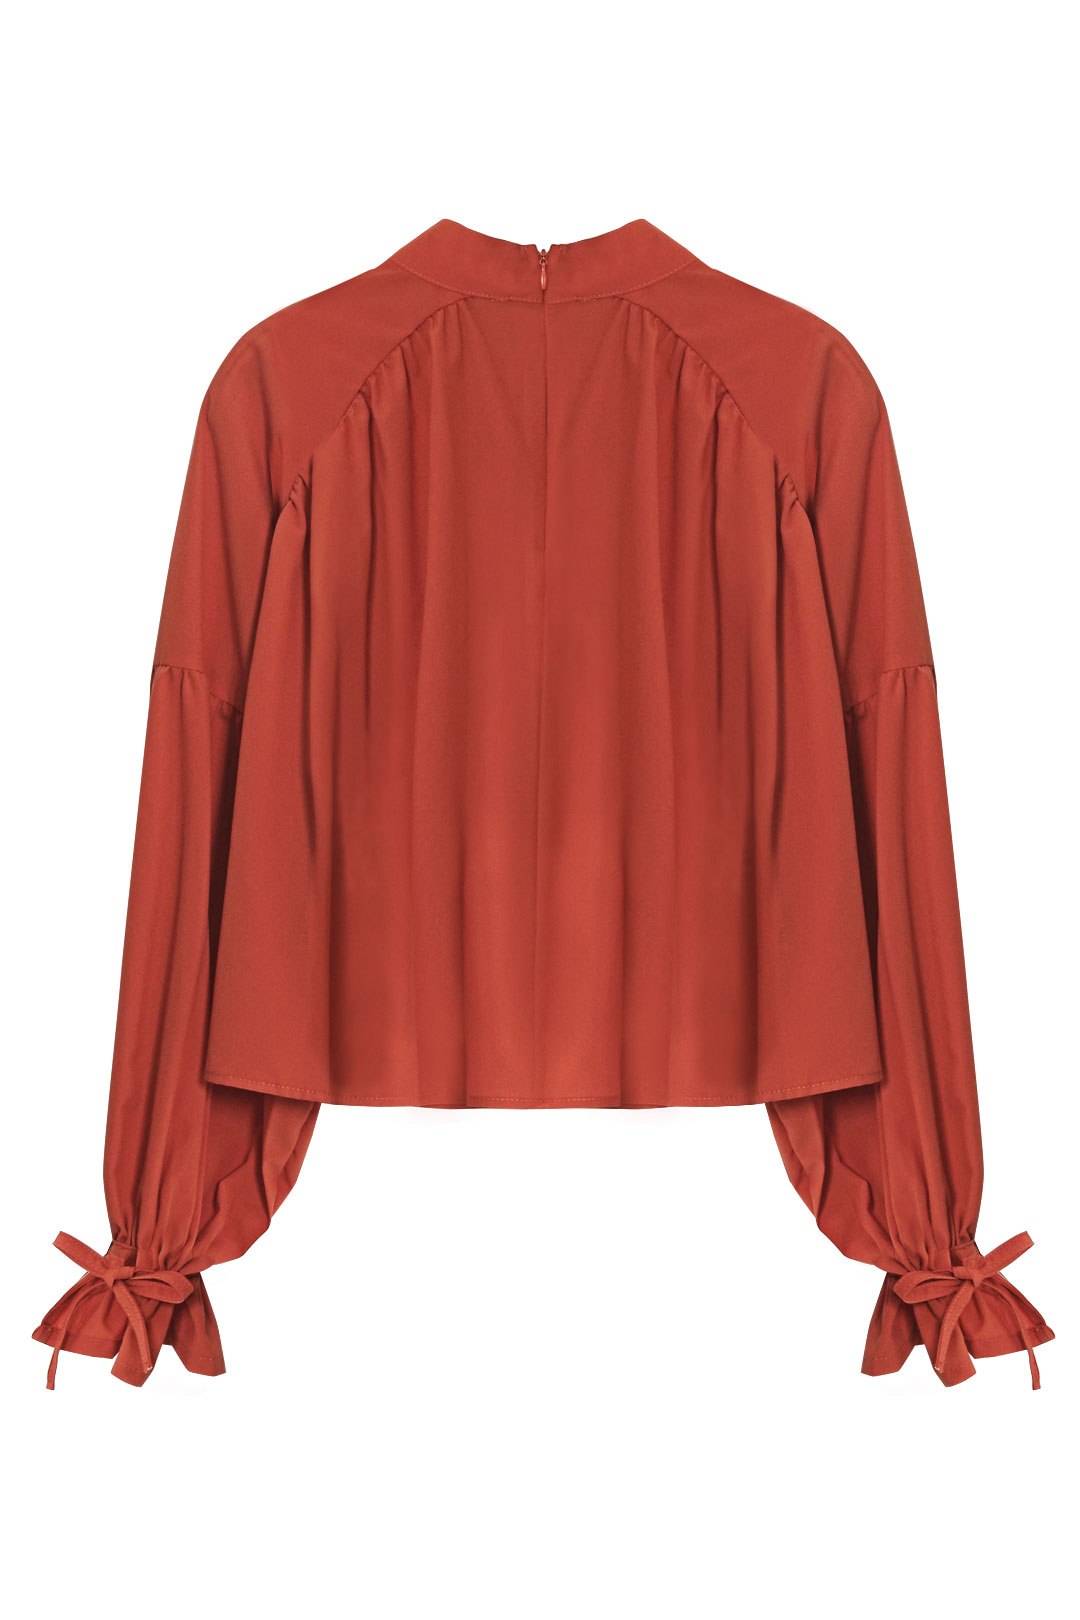 High-Neck Ruffled Blouse in Coral